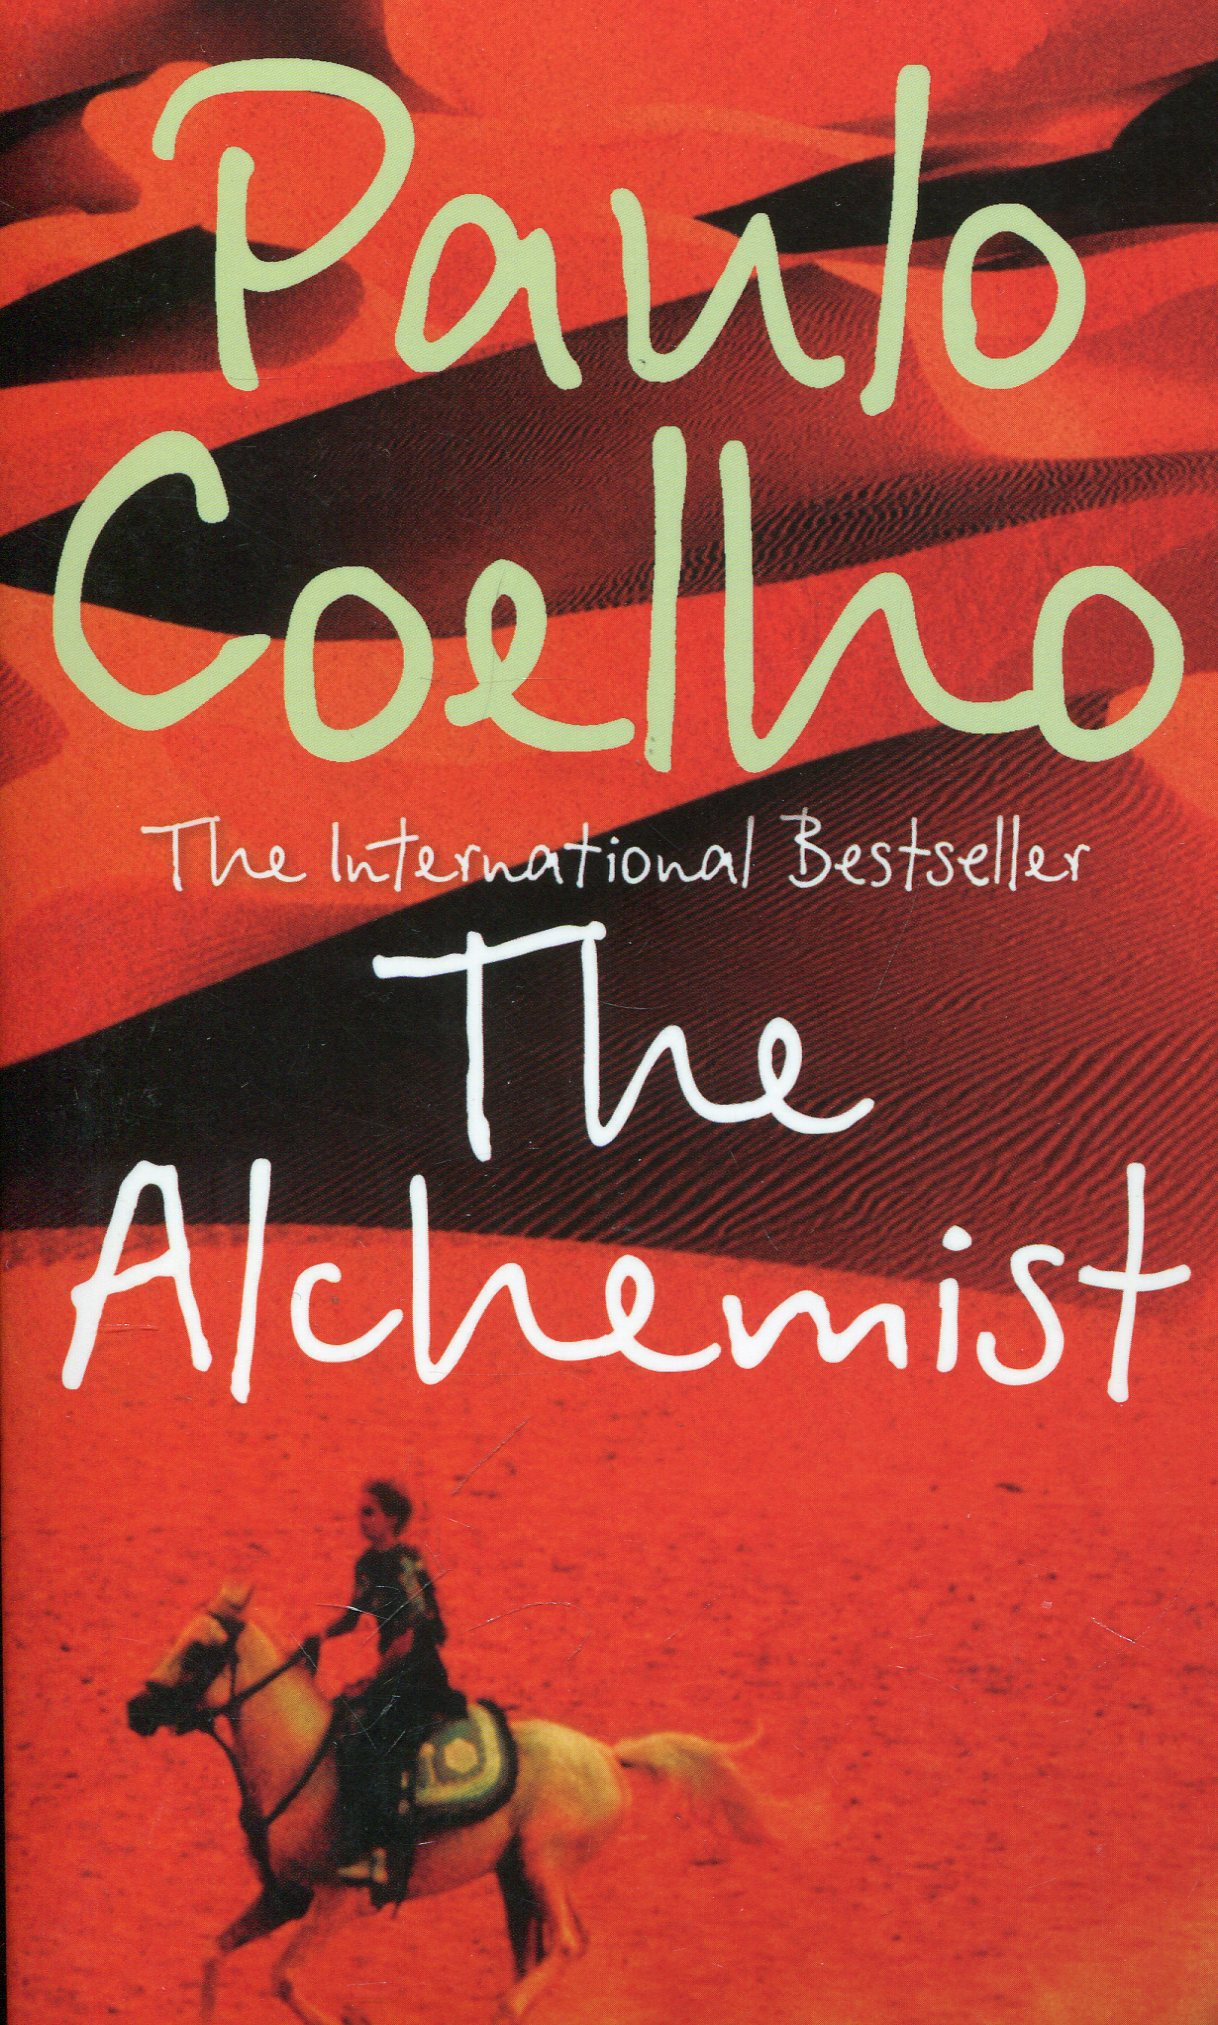 The alchemist book review essay